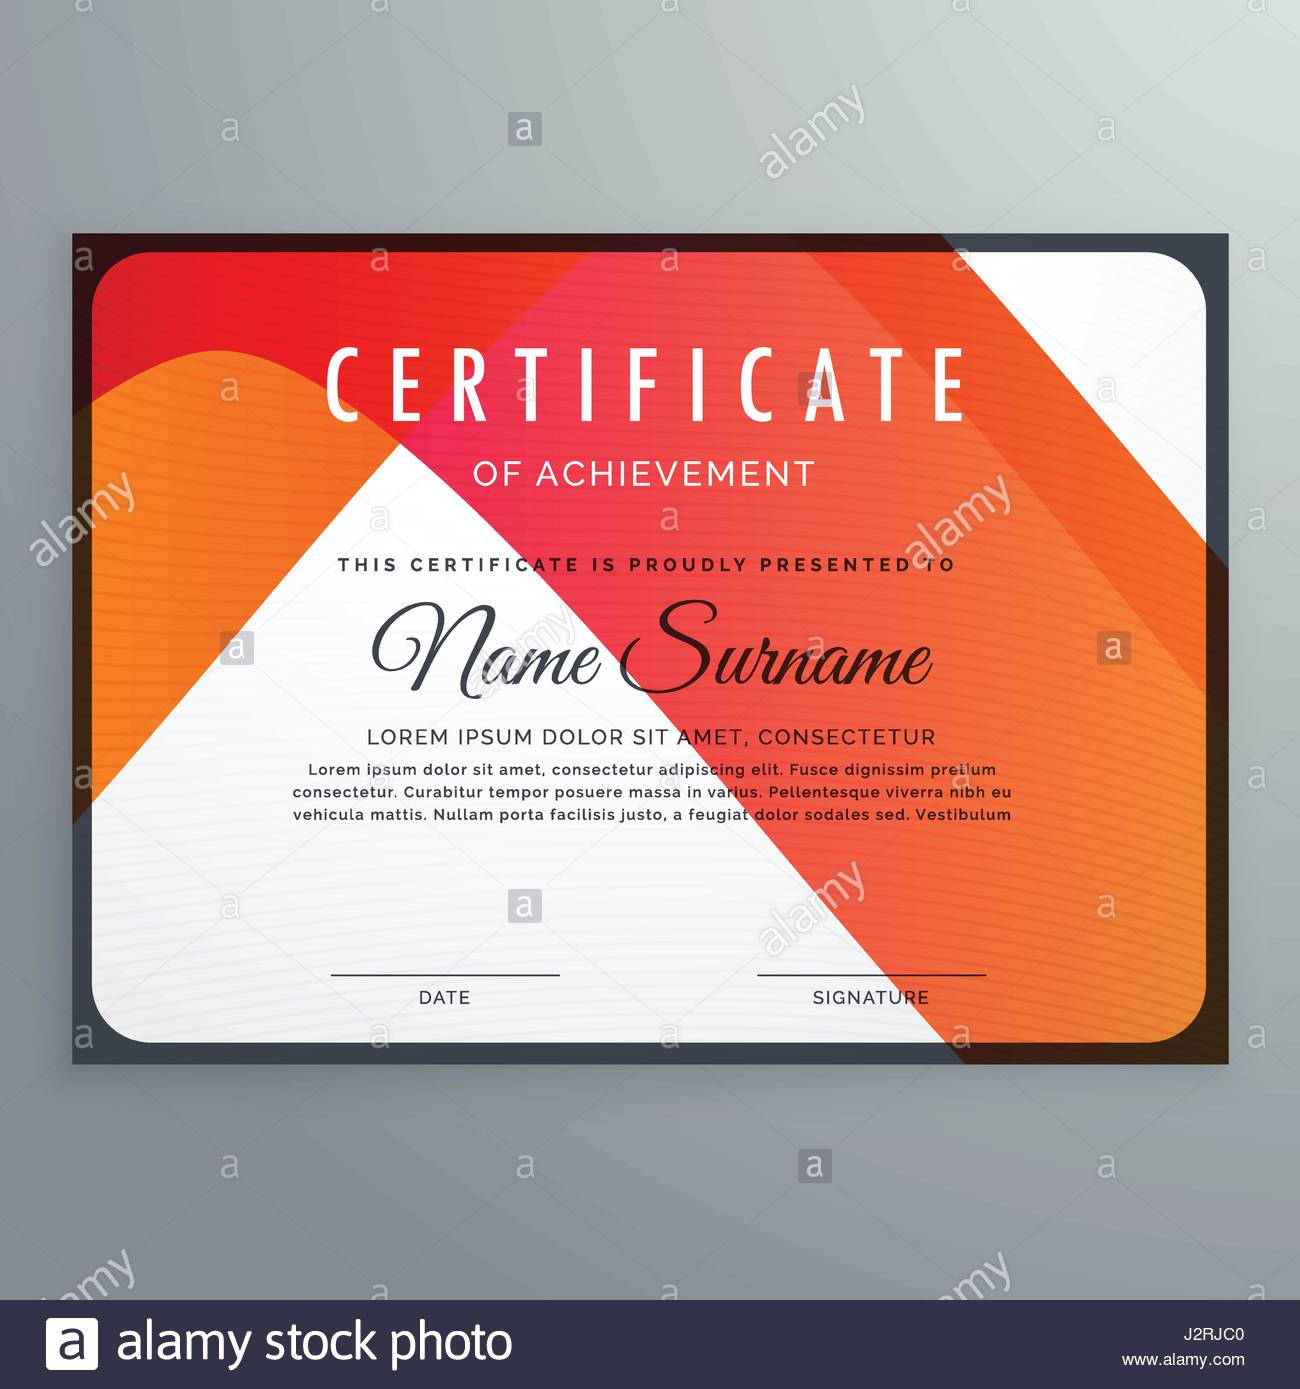 Elegant Appreciation Certificate Template Design Imágenes De Stock ...